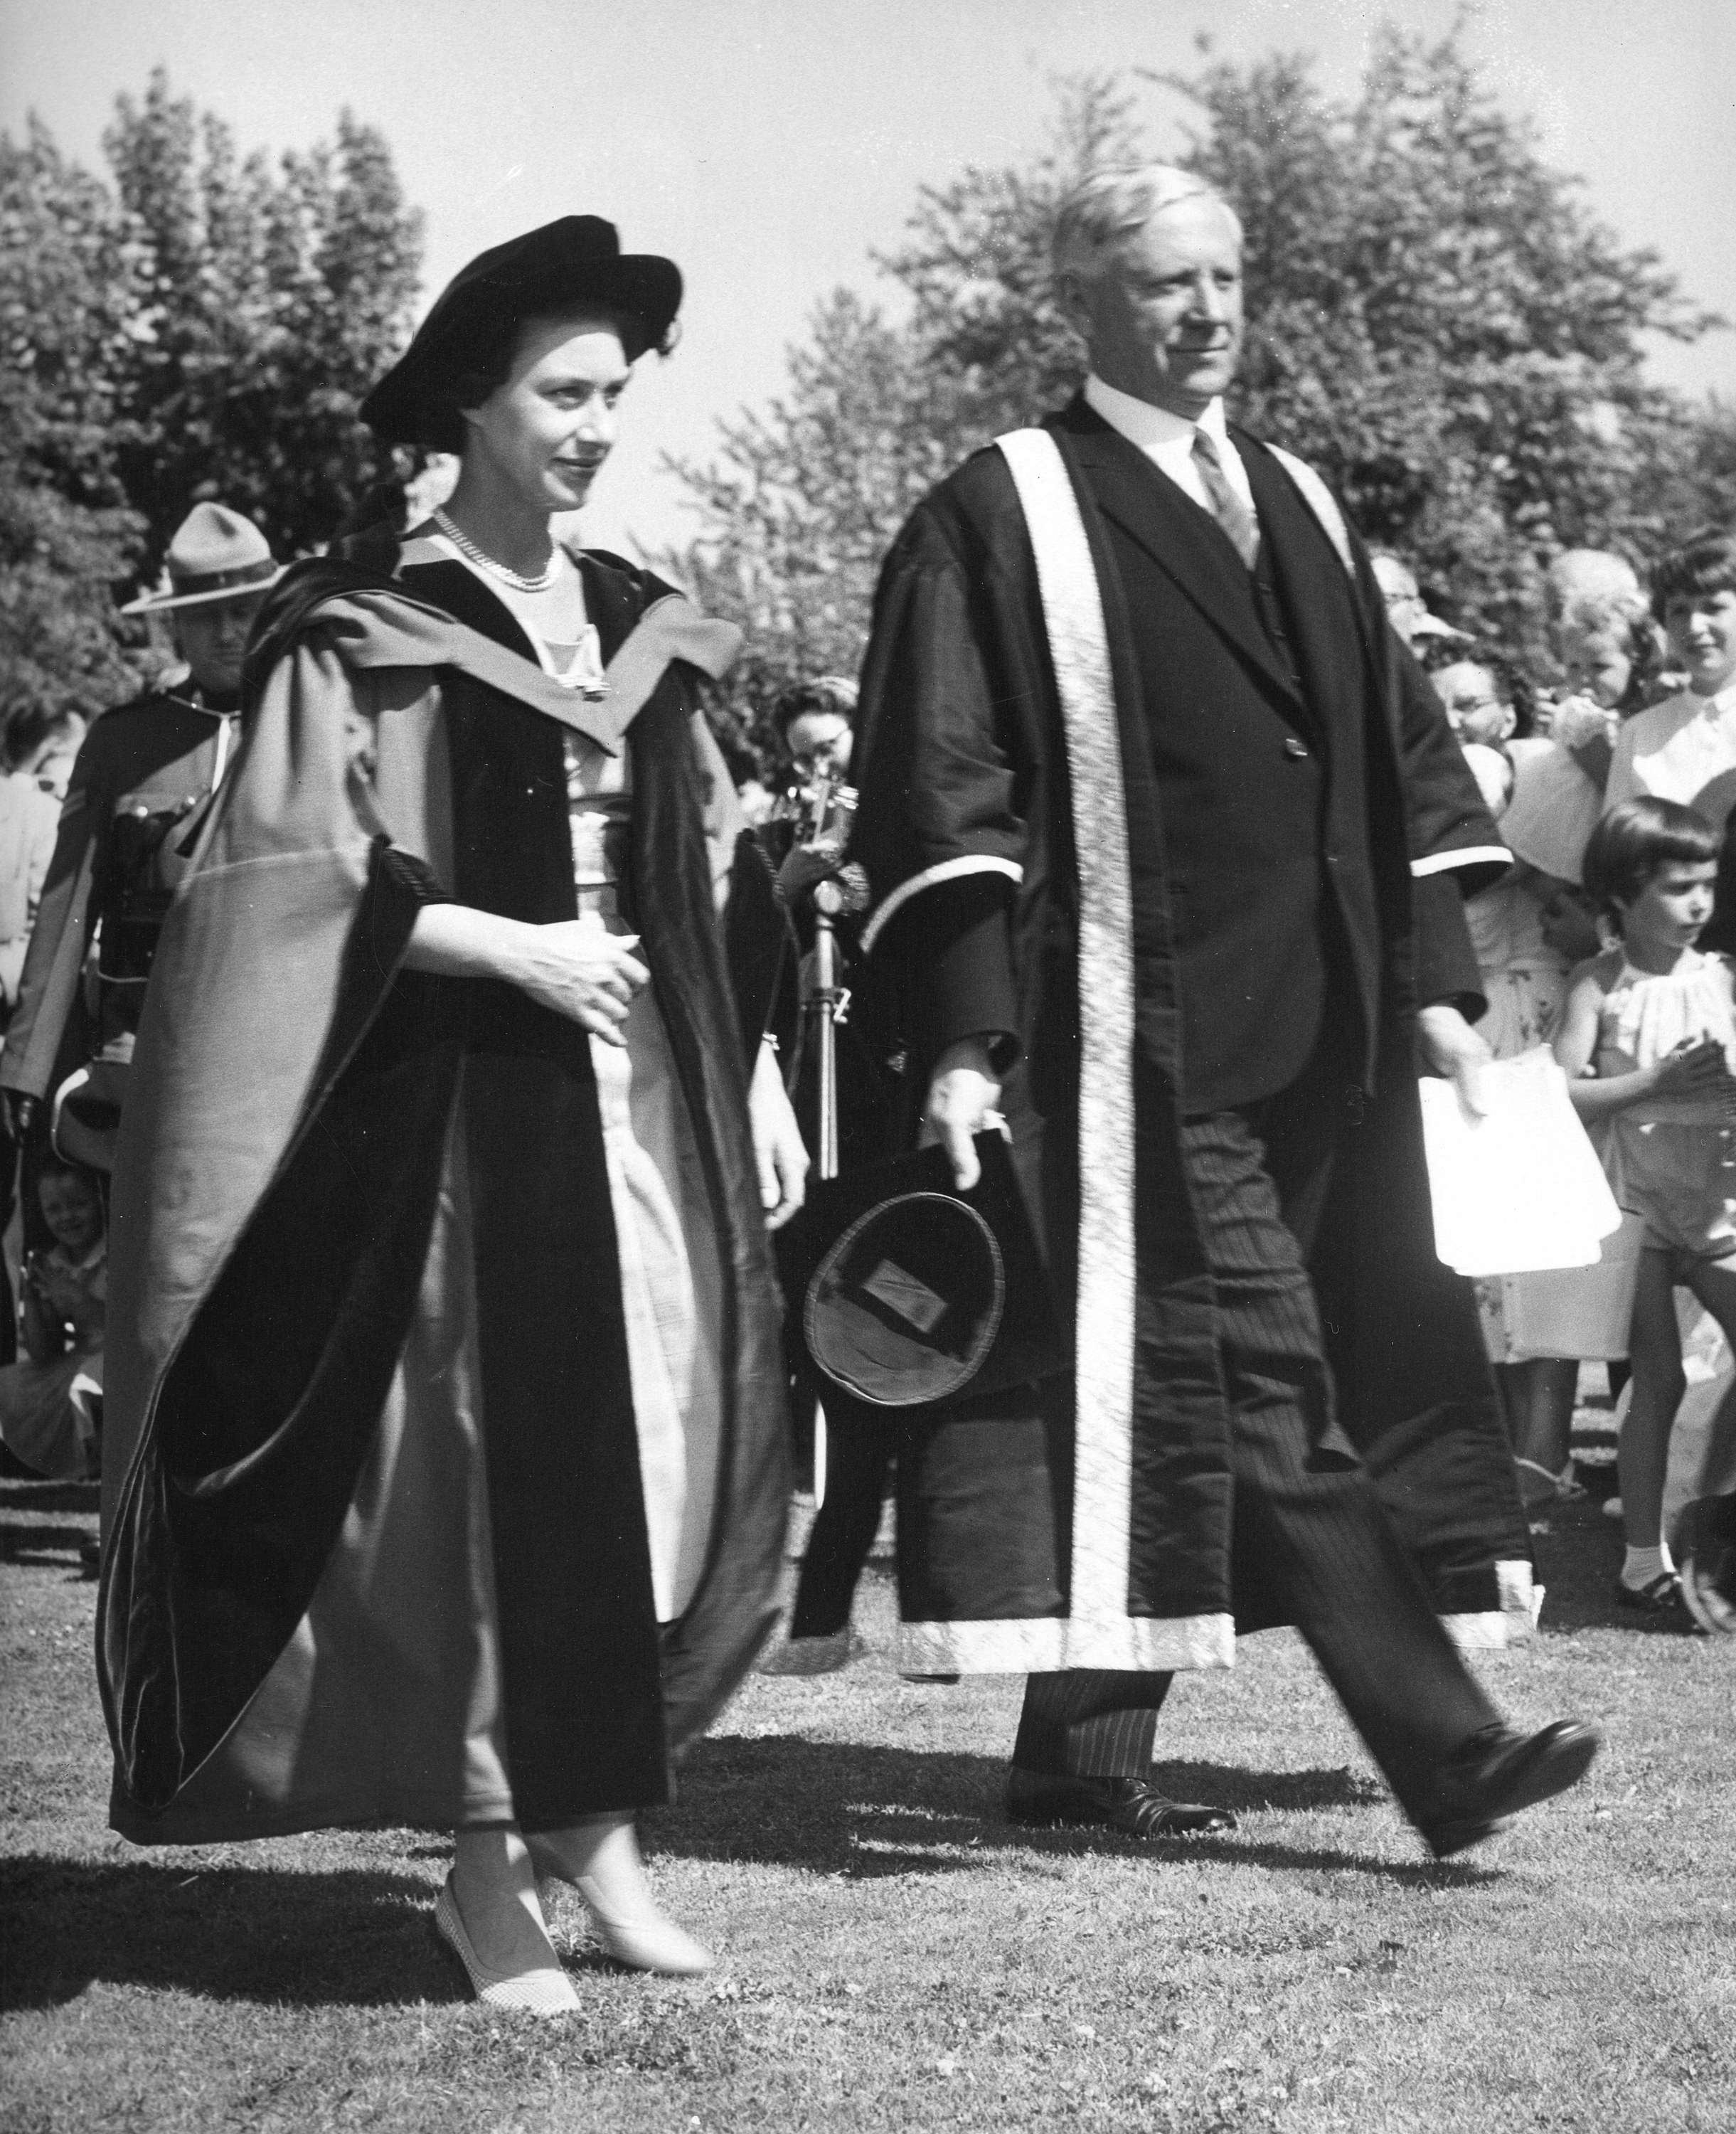 Princess Margaret after receiving an honorary Doctorate of Laws from President N.A.M. MacKenzie at UBC in 1958 (Public domain)